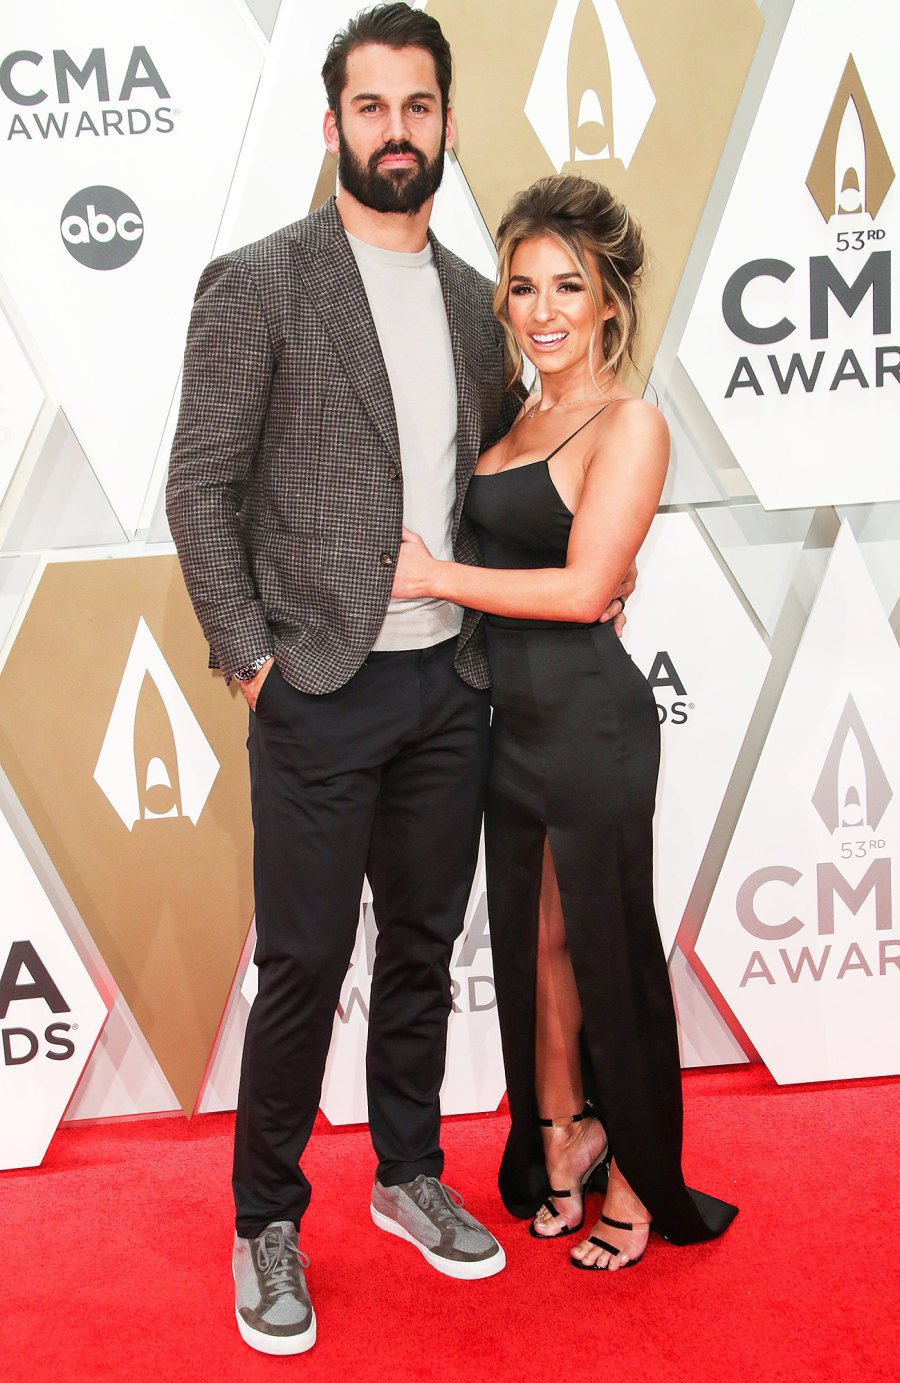 12 January 2020 Jessie James Decker and Eric Decker Timeline of Their Relationship Timeline